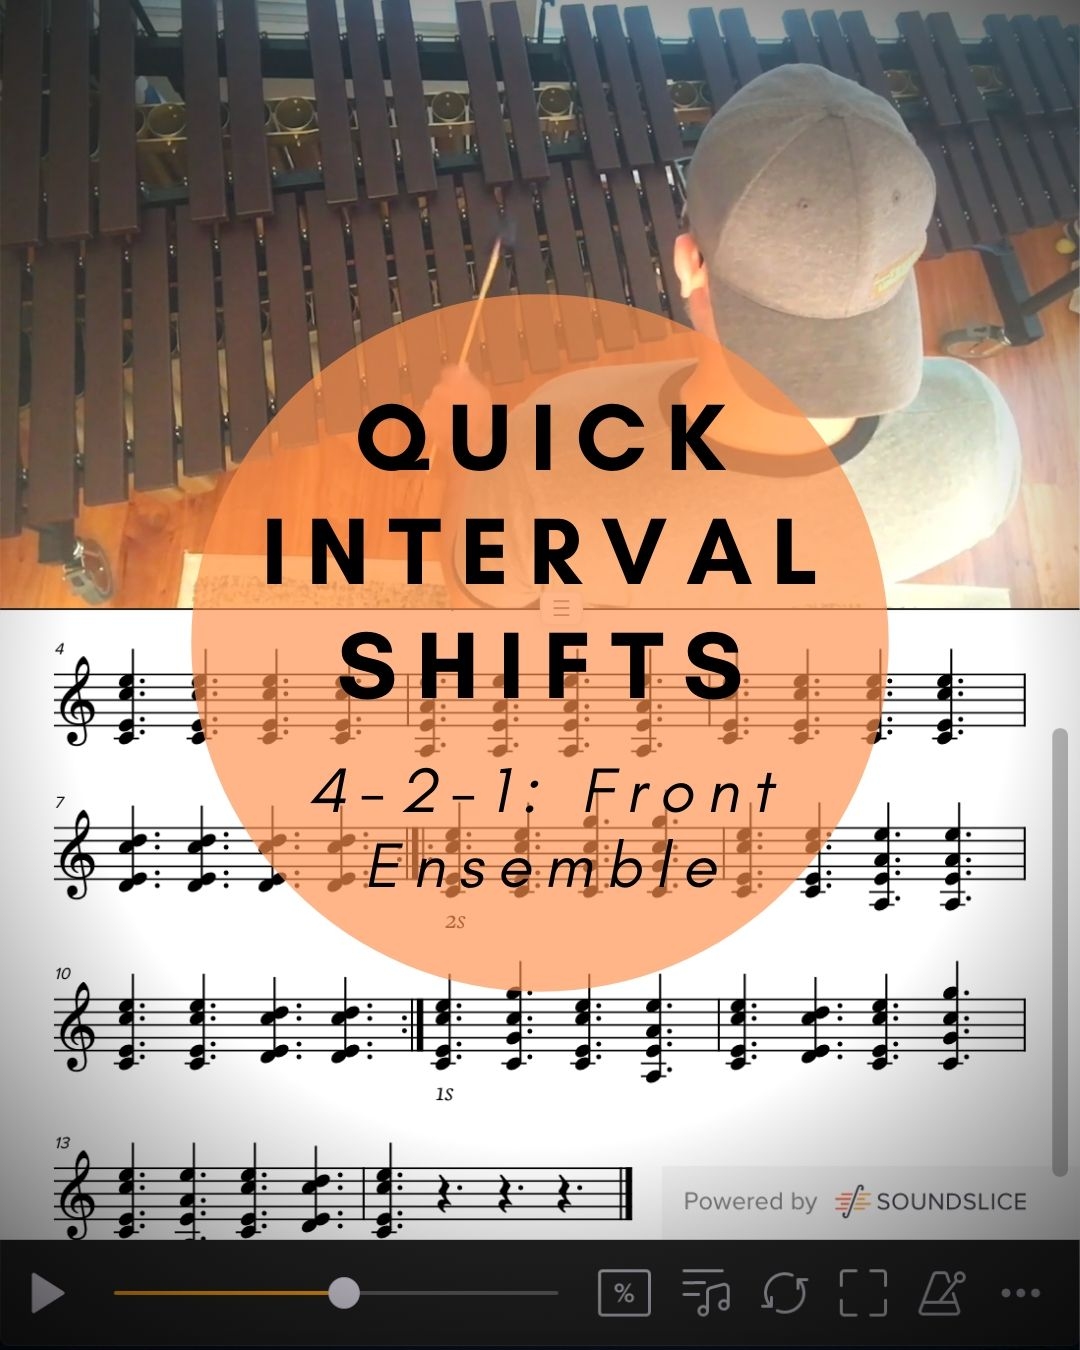 Quick Interval Shifts